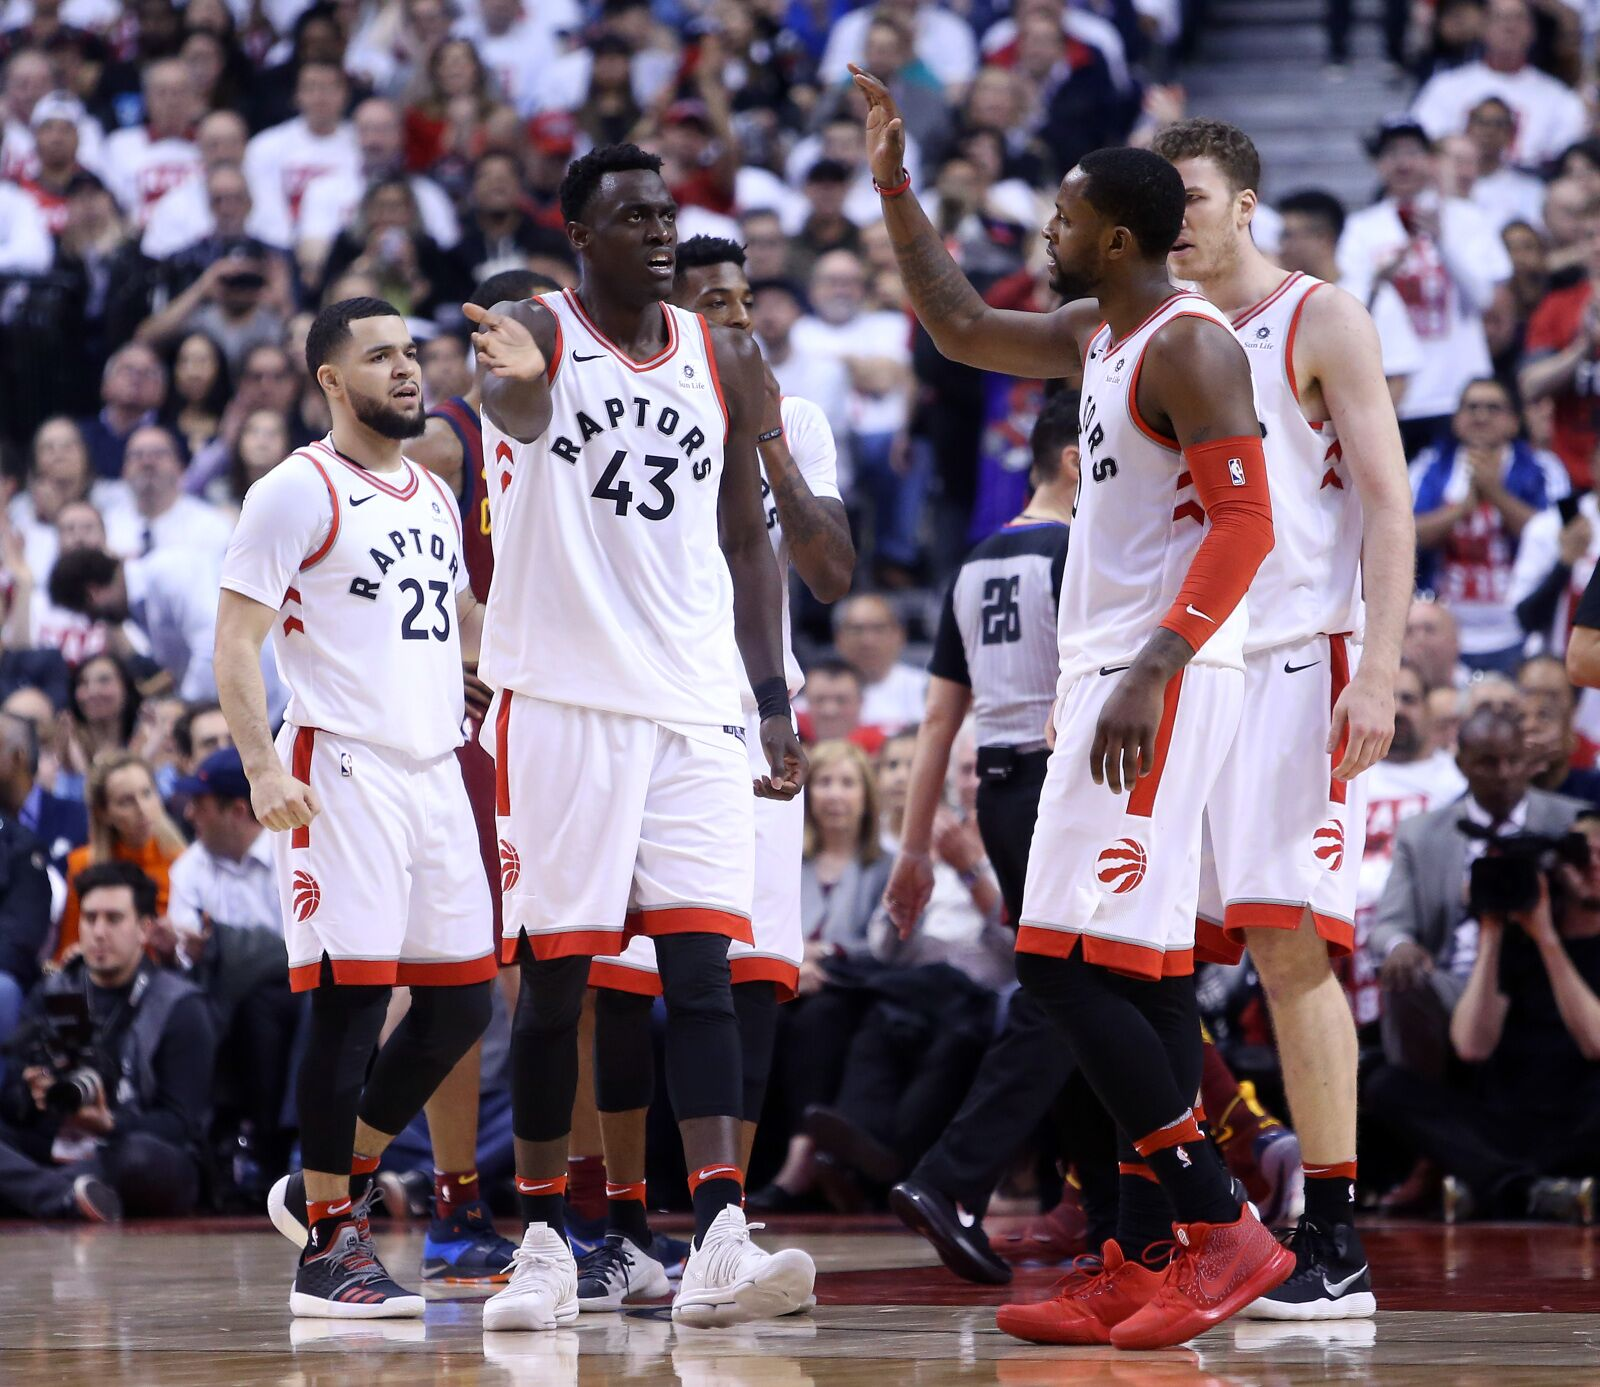 Pascal Siakam will see the most growth for the Toronto Raptors next year